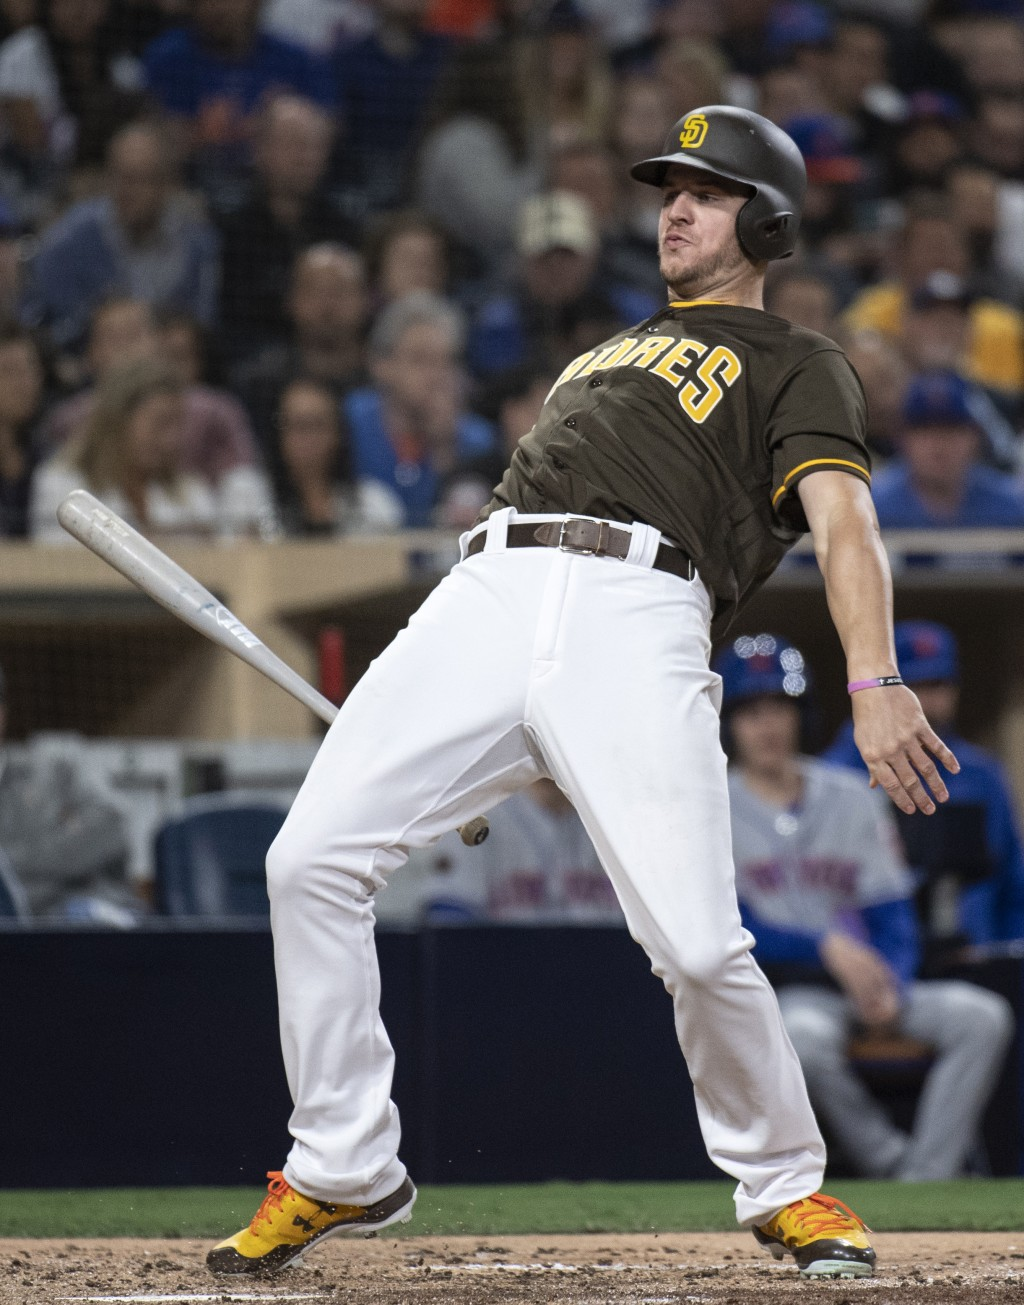 San Diego Padres' Wil Myers evades an inside pitch during the third inning of a baseball game against the New York Mets in San Diego, Friday, April, 2...